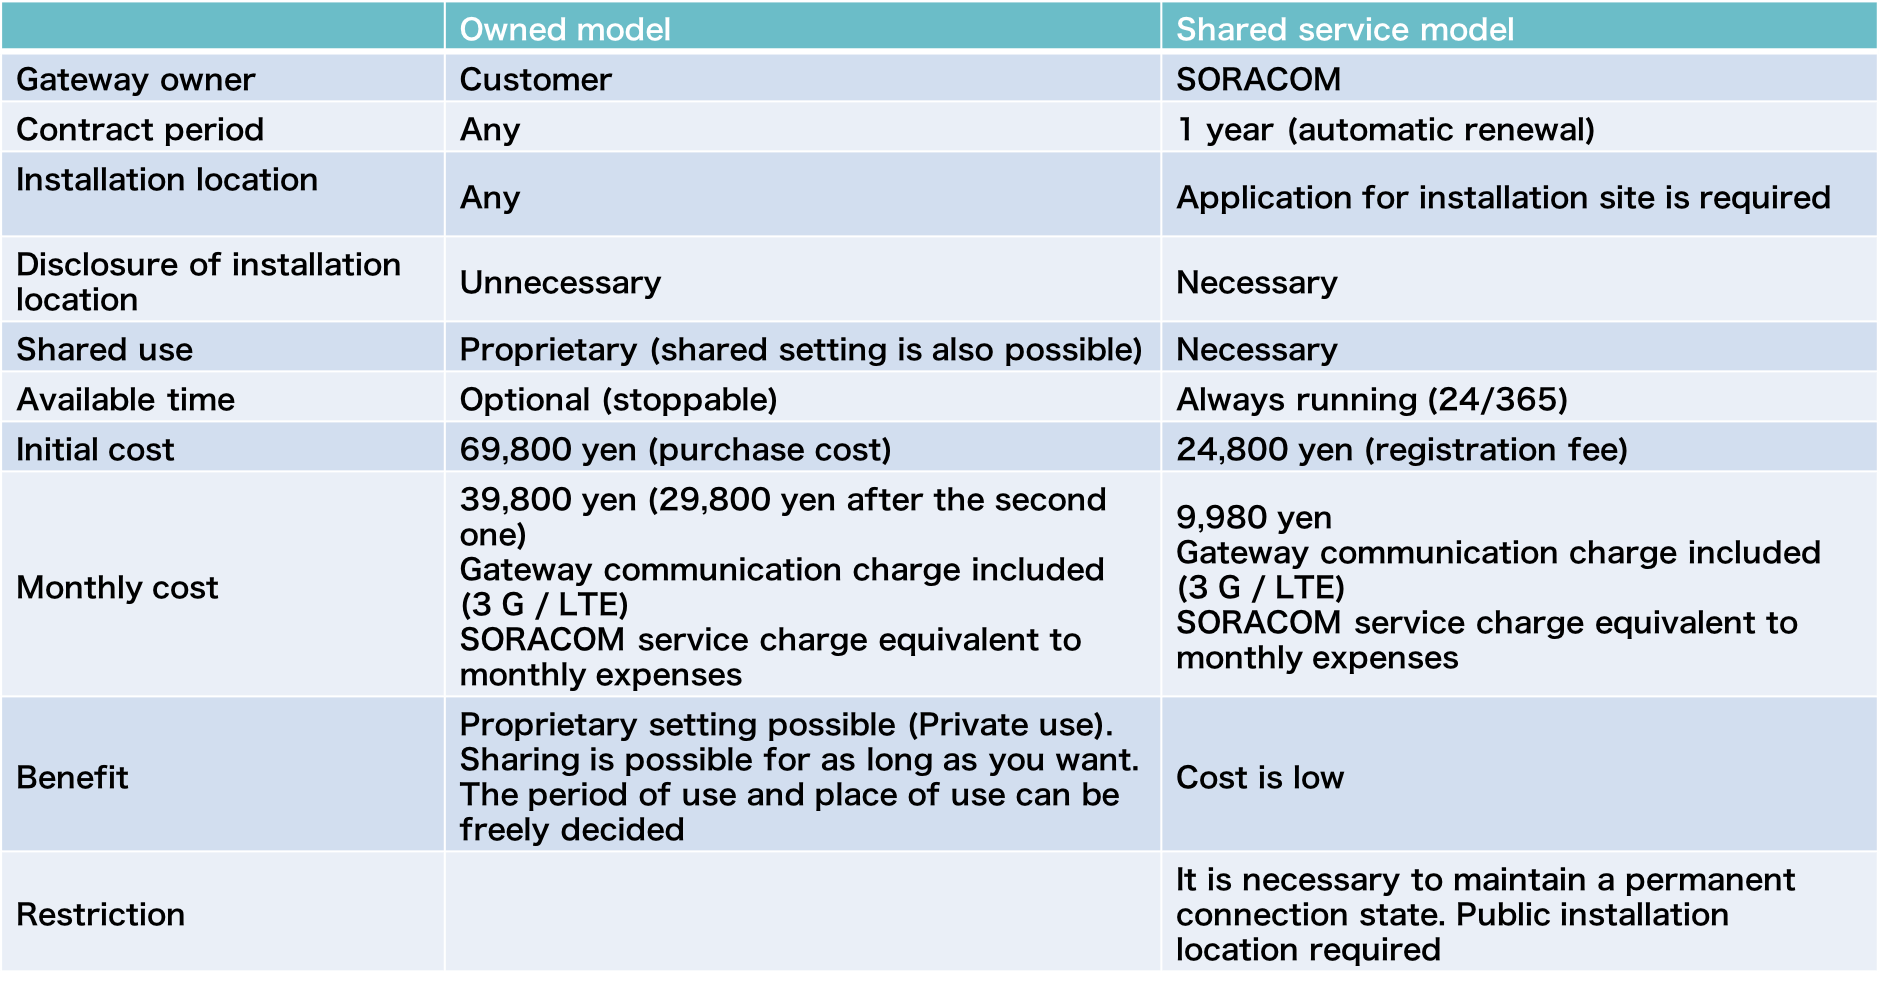 "Comparison of ""owned model"" and ""shared service model"